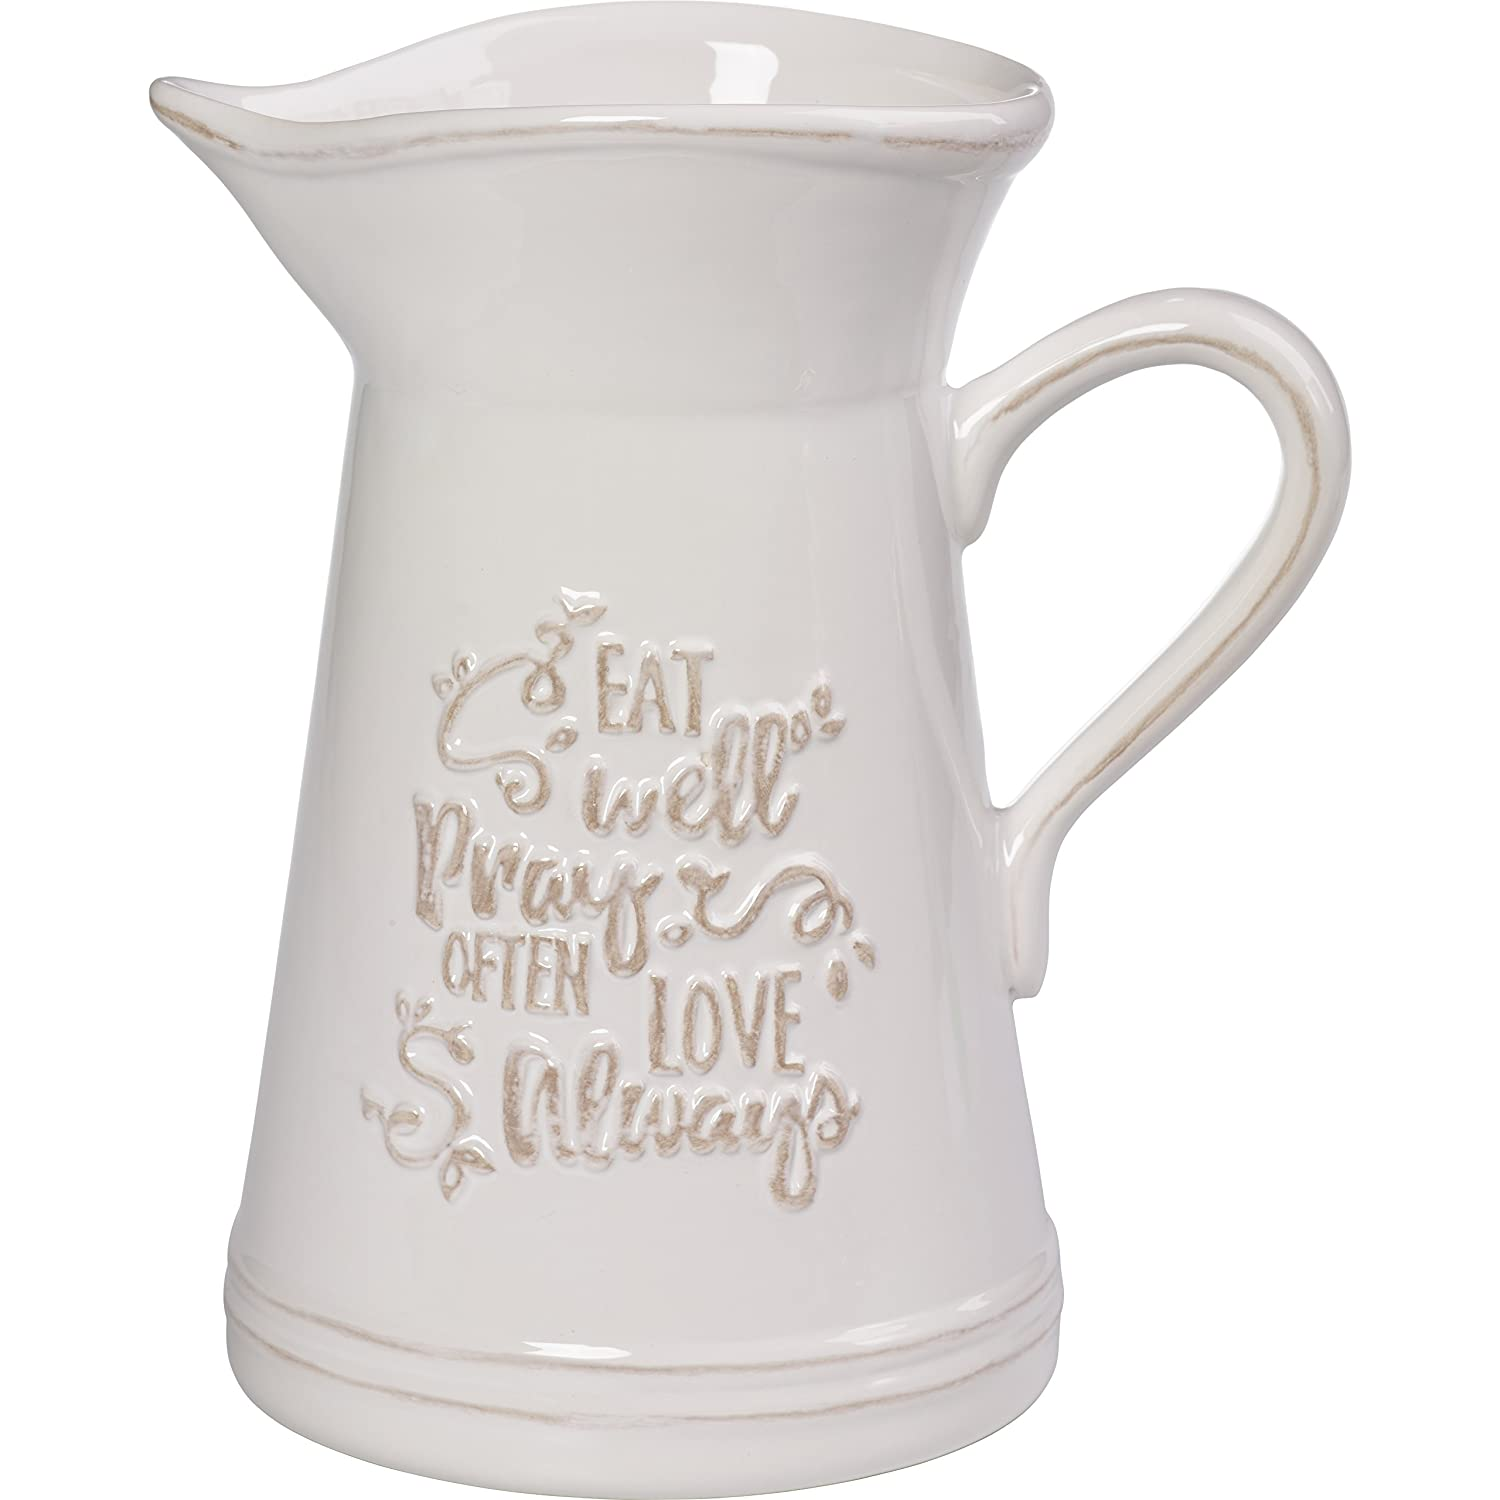 Precious Moments 173410 Ceramic Kitchen Utensil Holder Or Pitcher One Size Multicolor